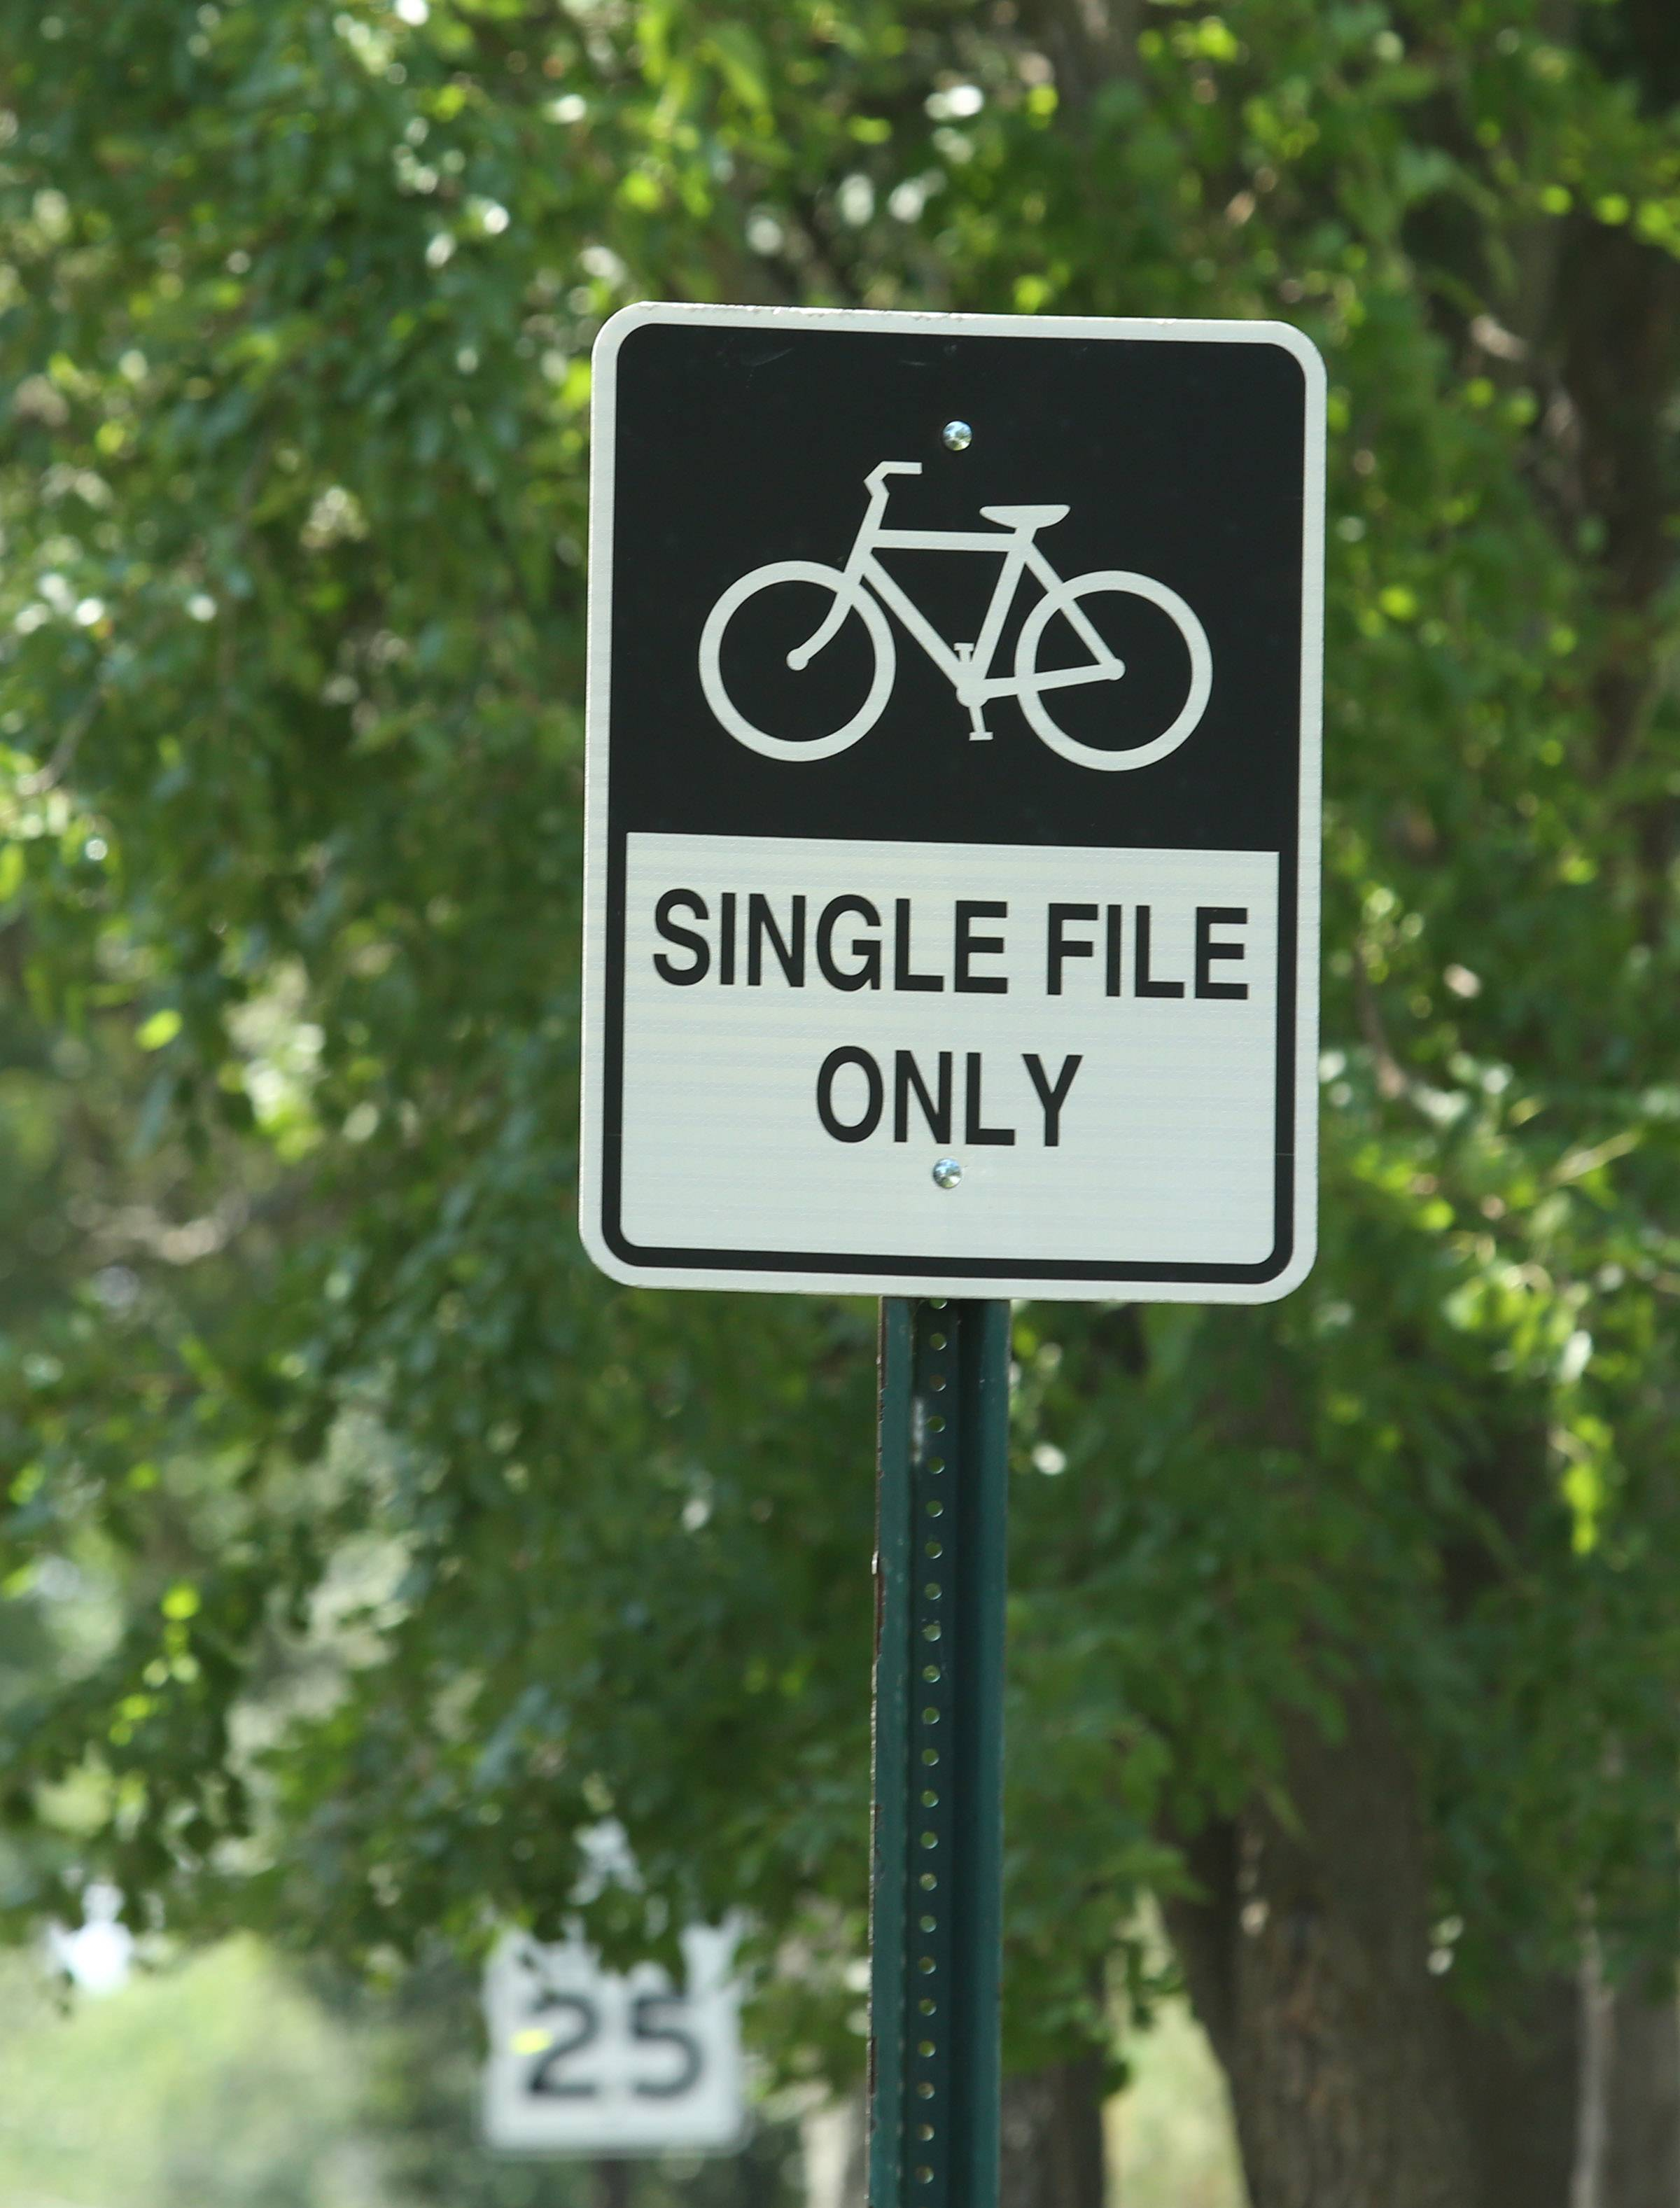 Despite signs informing cyclists to ride in single file, Barrington Hills residents say bikers often flout the rules and block vehicles.